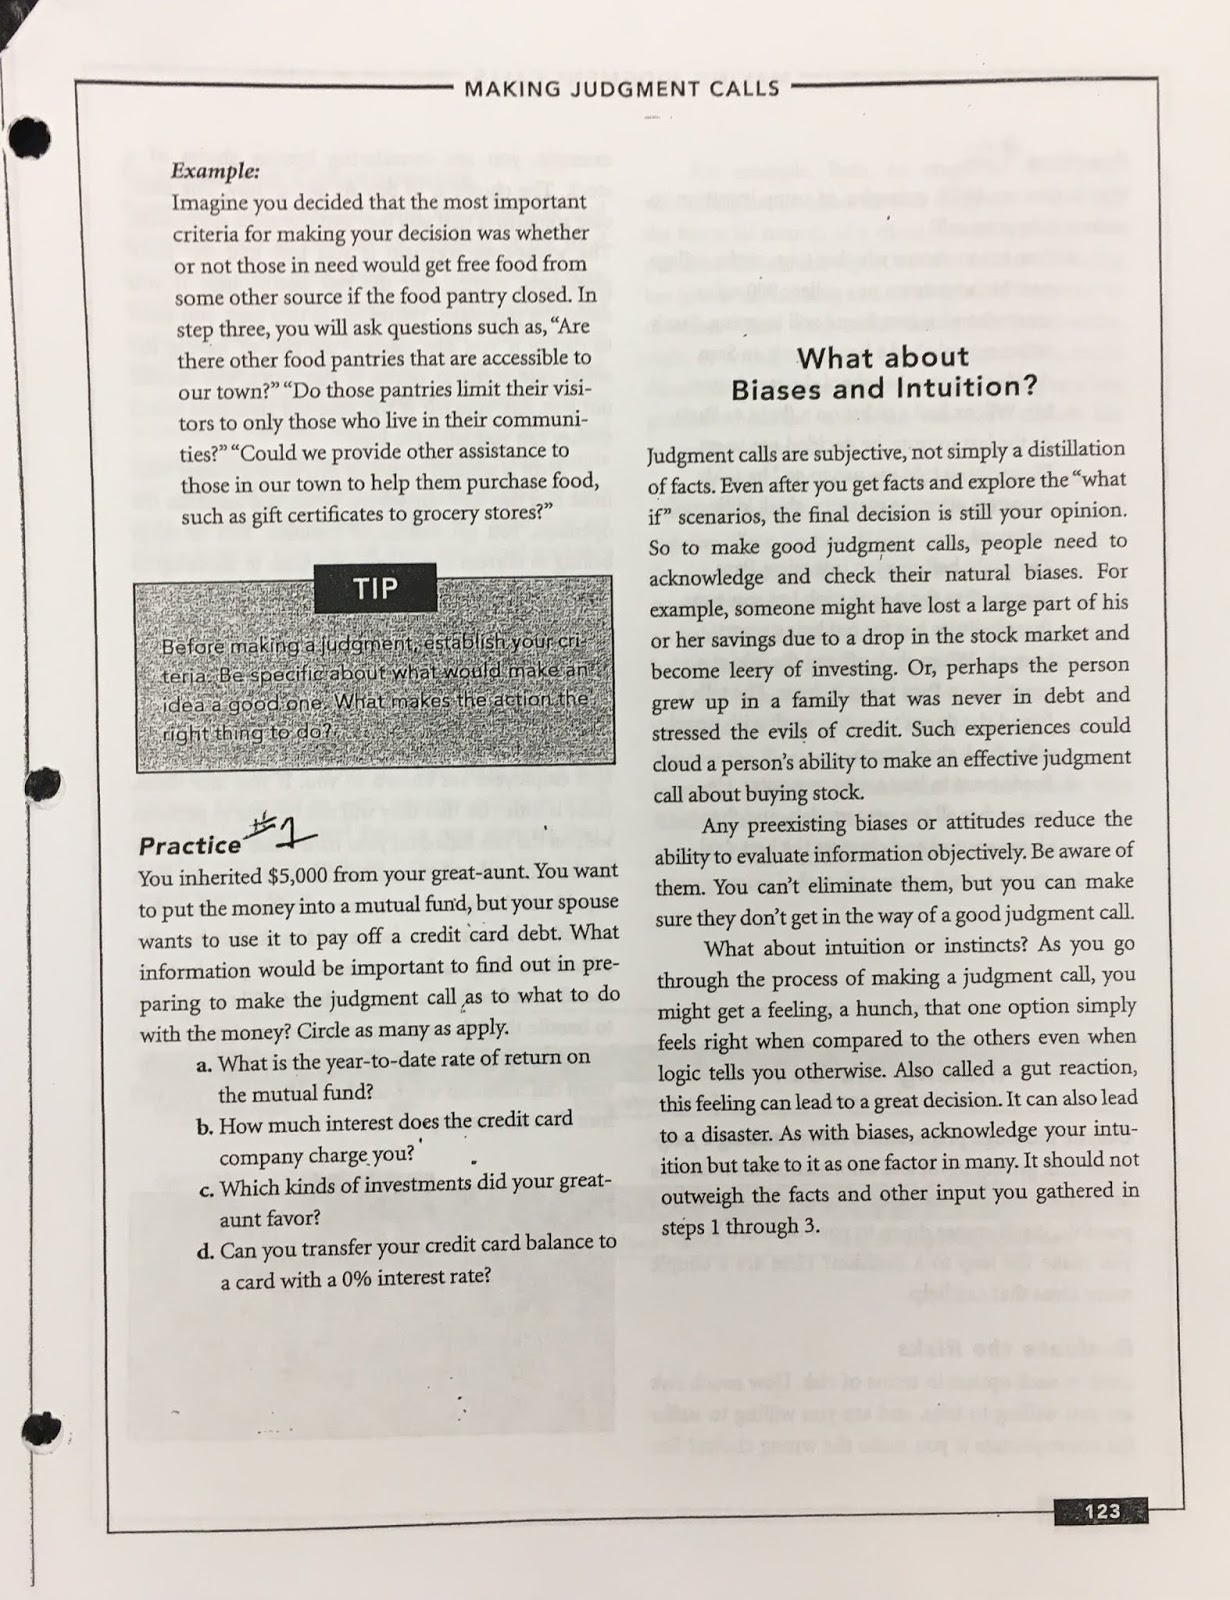 Foundational Leading With Critical Thinking